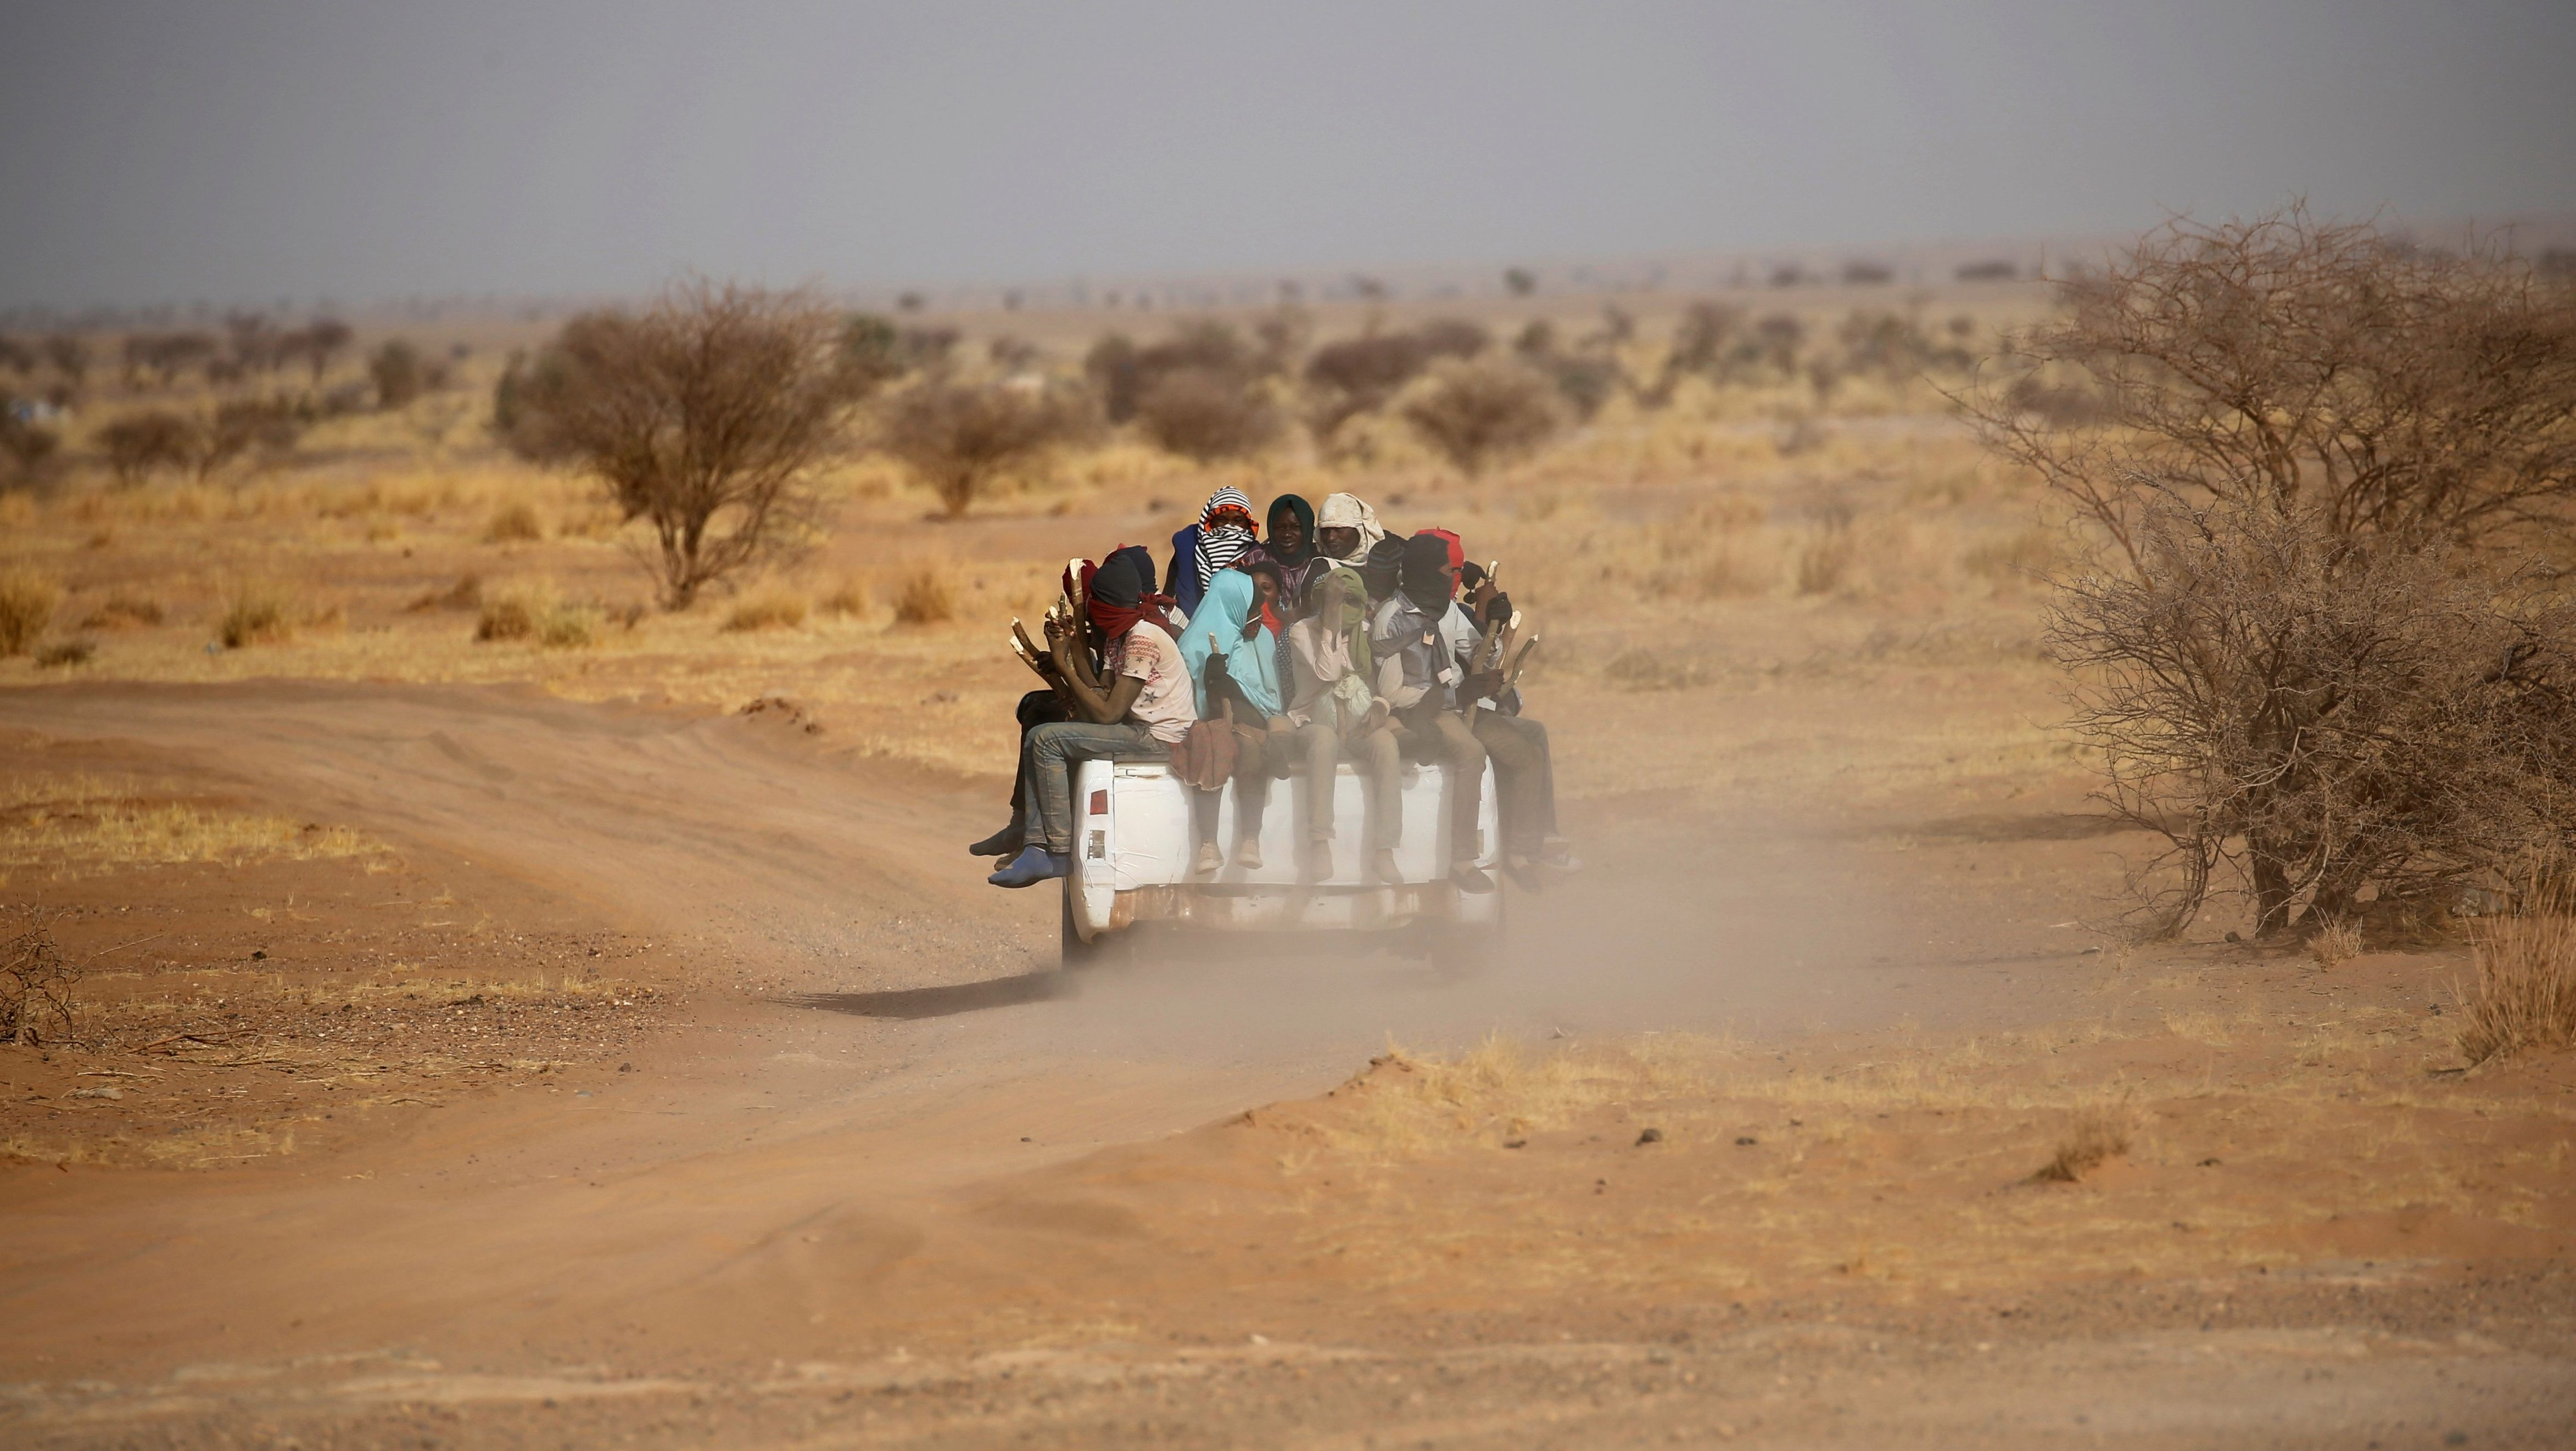 Migrants crossing the Sahara desert into Libya ride on the back of a pickup truck outside Agadez, Niger, May 9, 2016. Picture taken May 9, 2016.